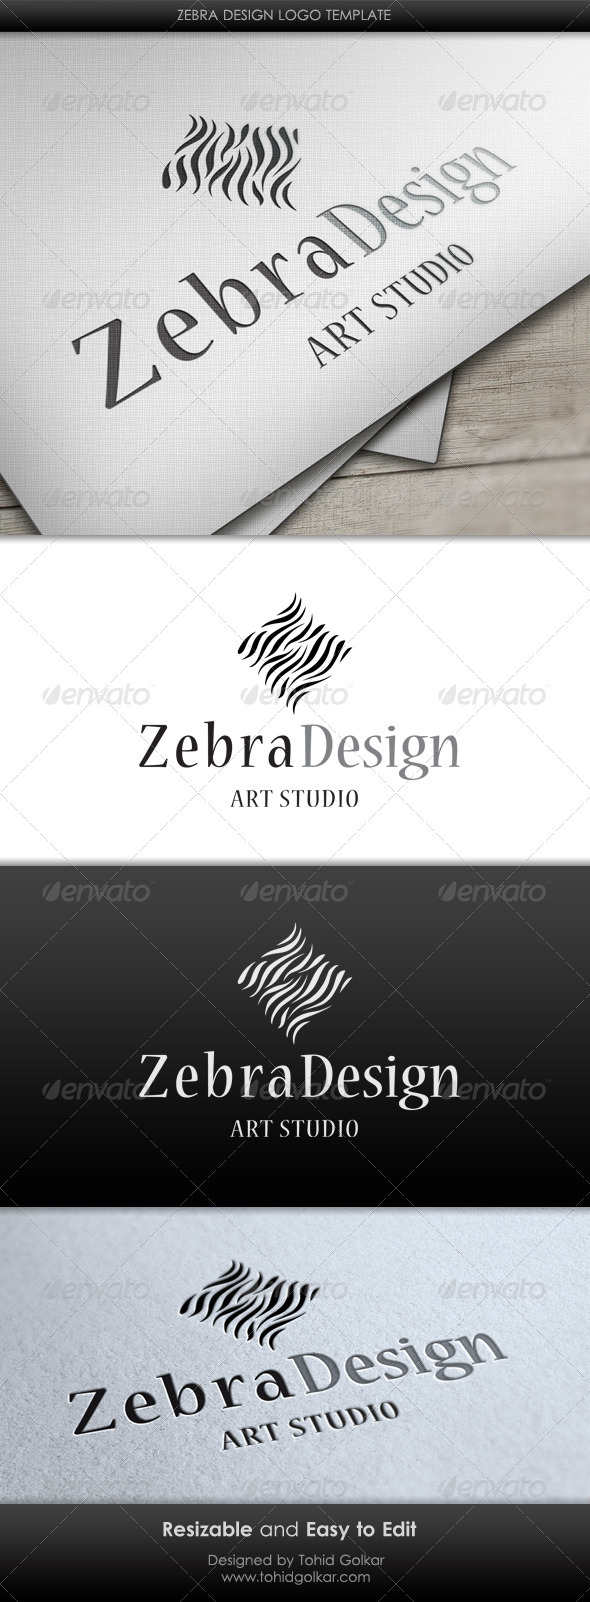 Zebra Design Logo Template